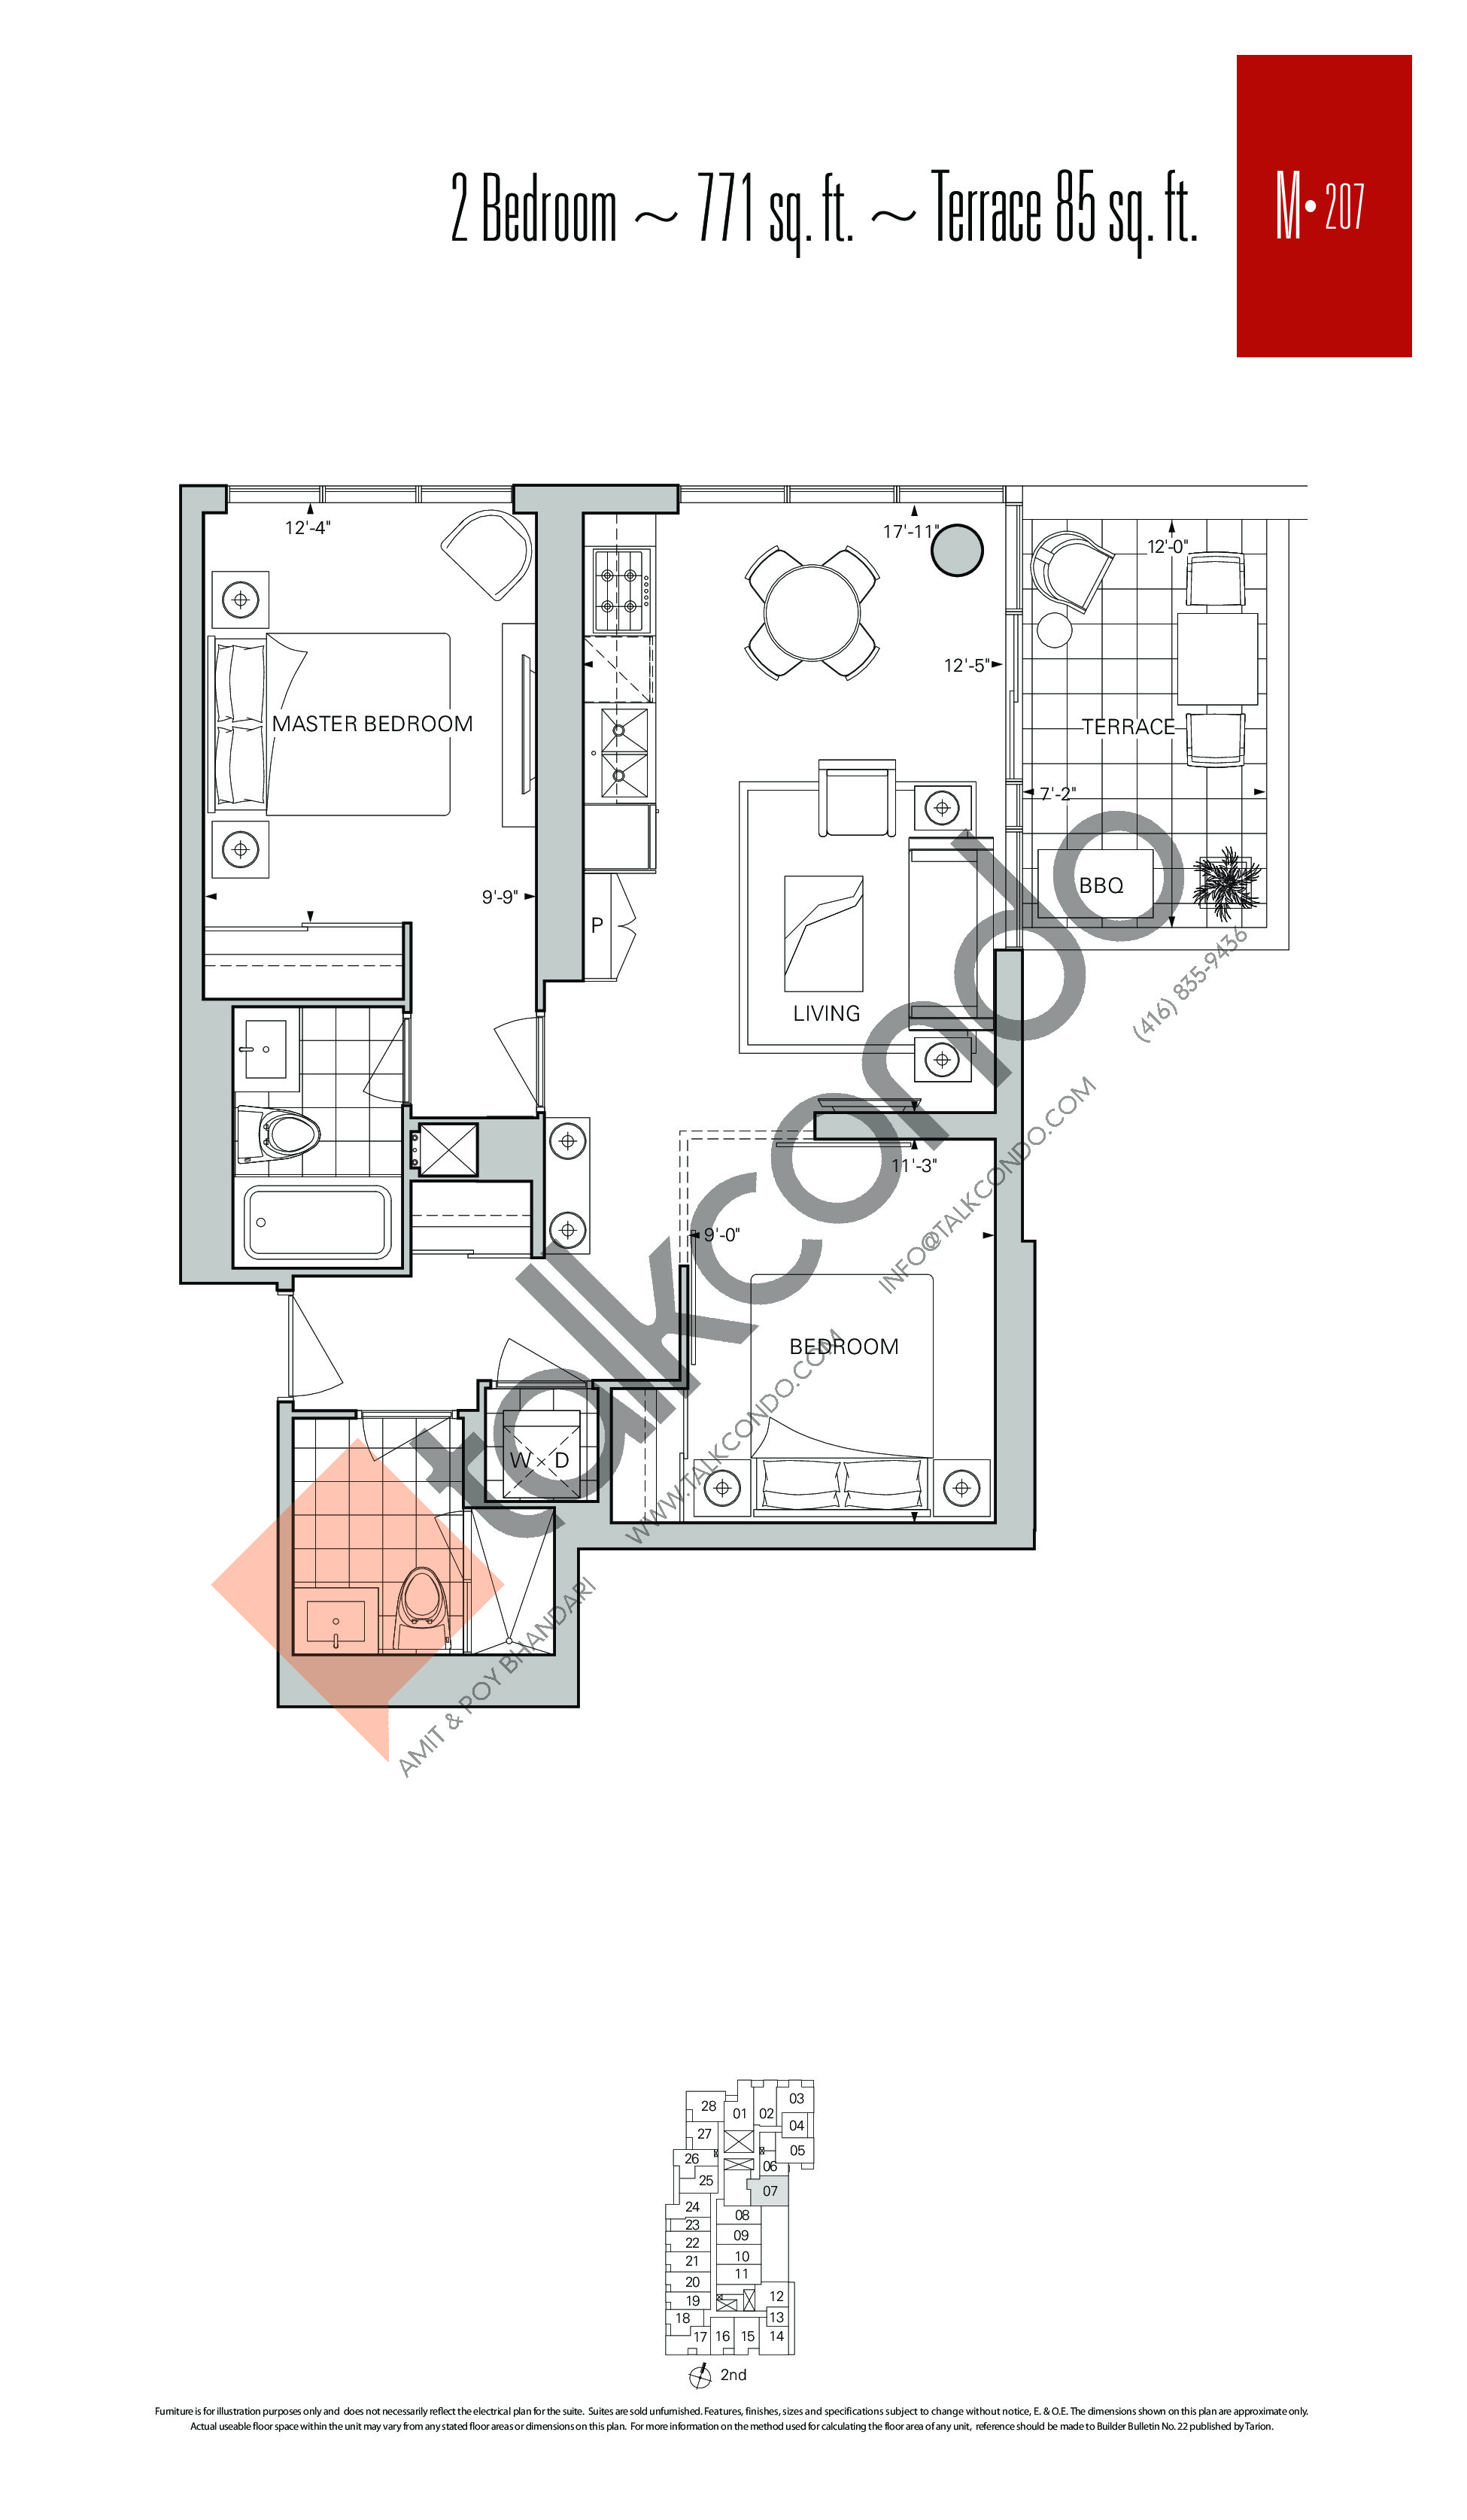 M-207 Floor Plan at Rise Condos - 771 sq.ft